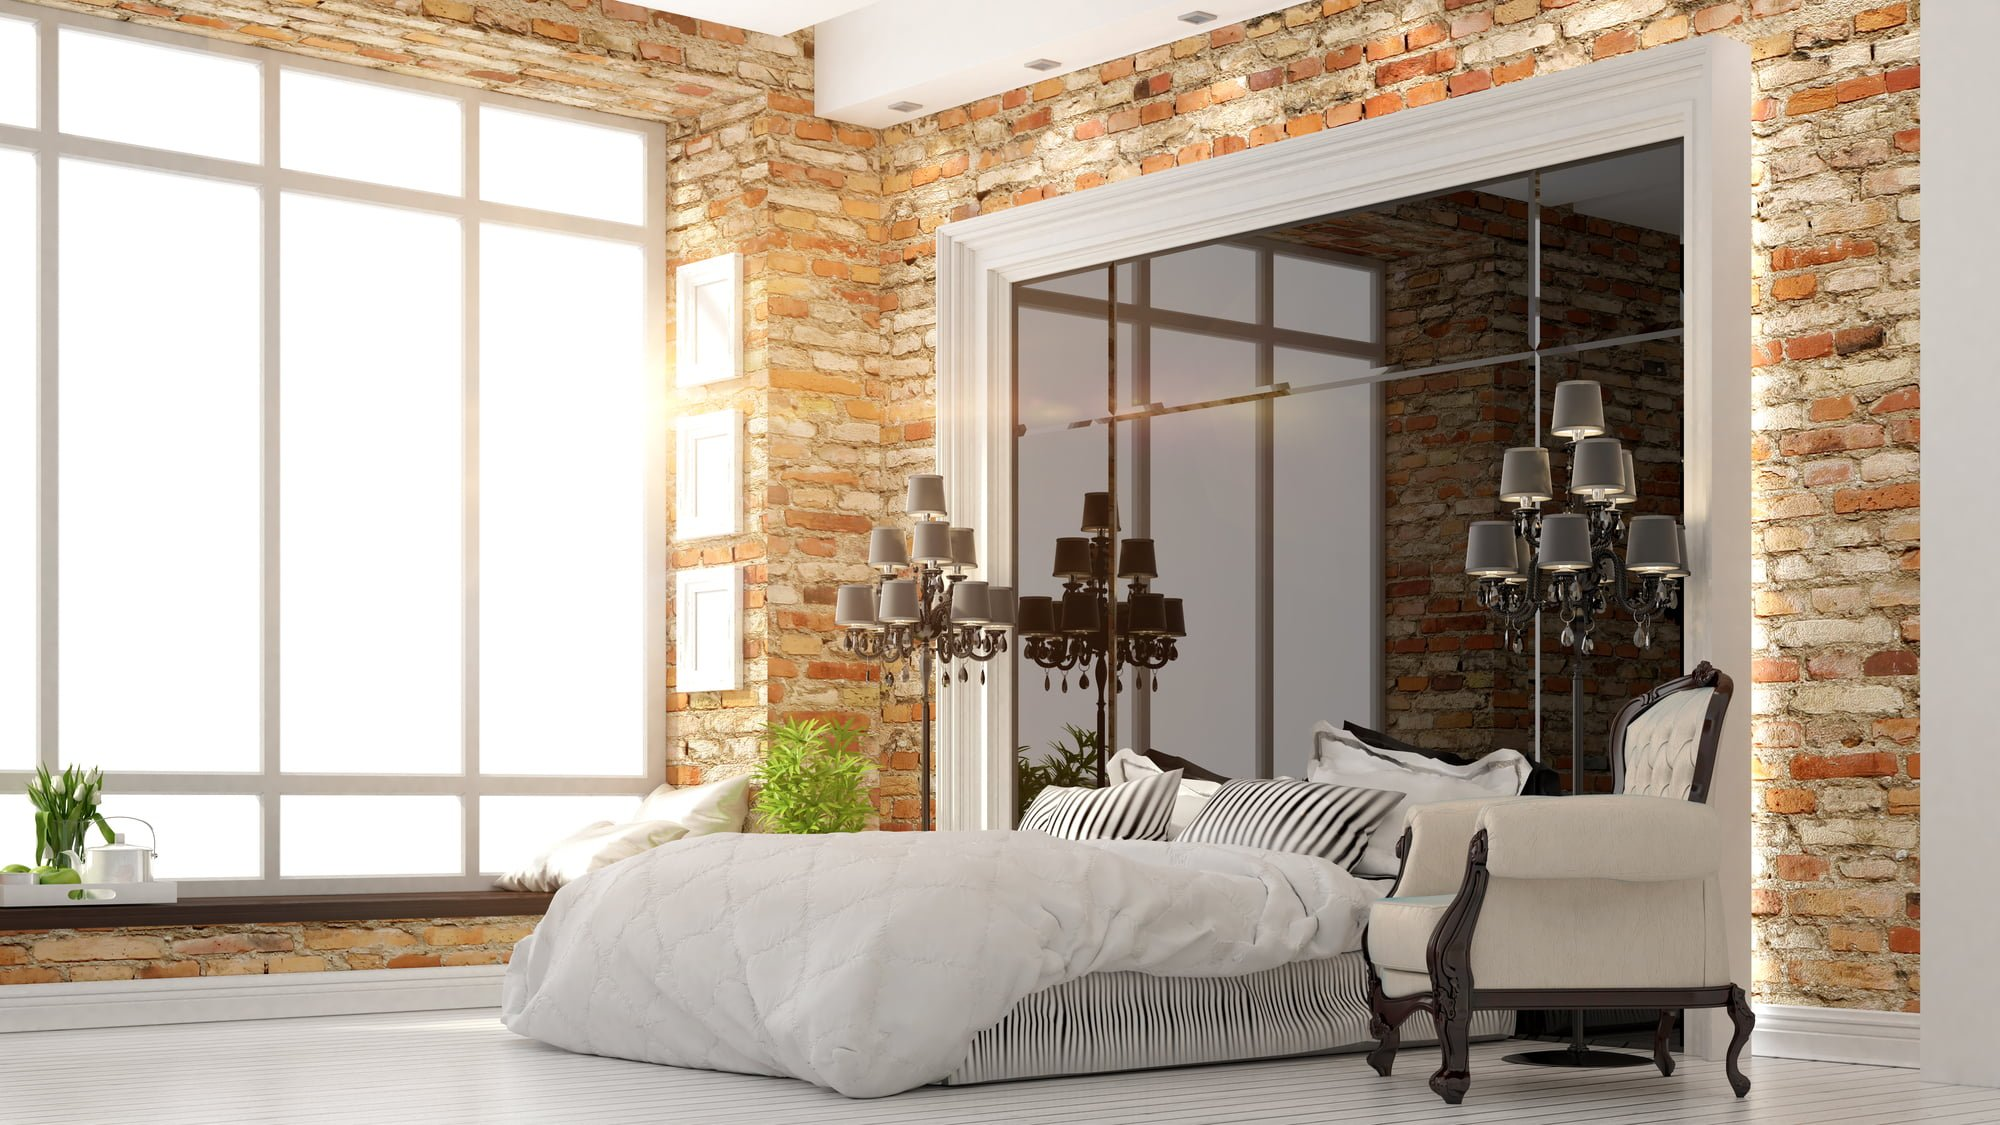 Master Bedroom An Antiquated Term That Must Be Addressed Shout Out Uk